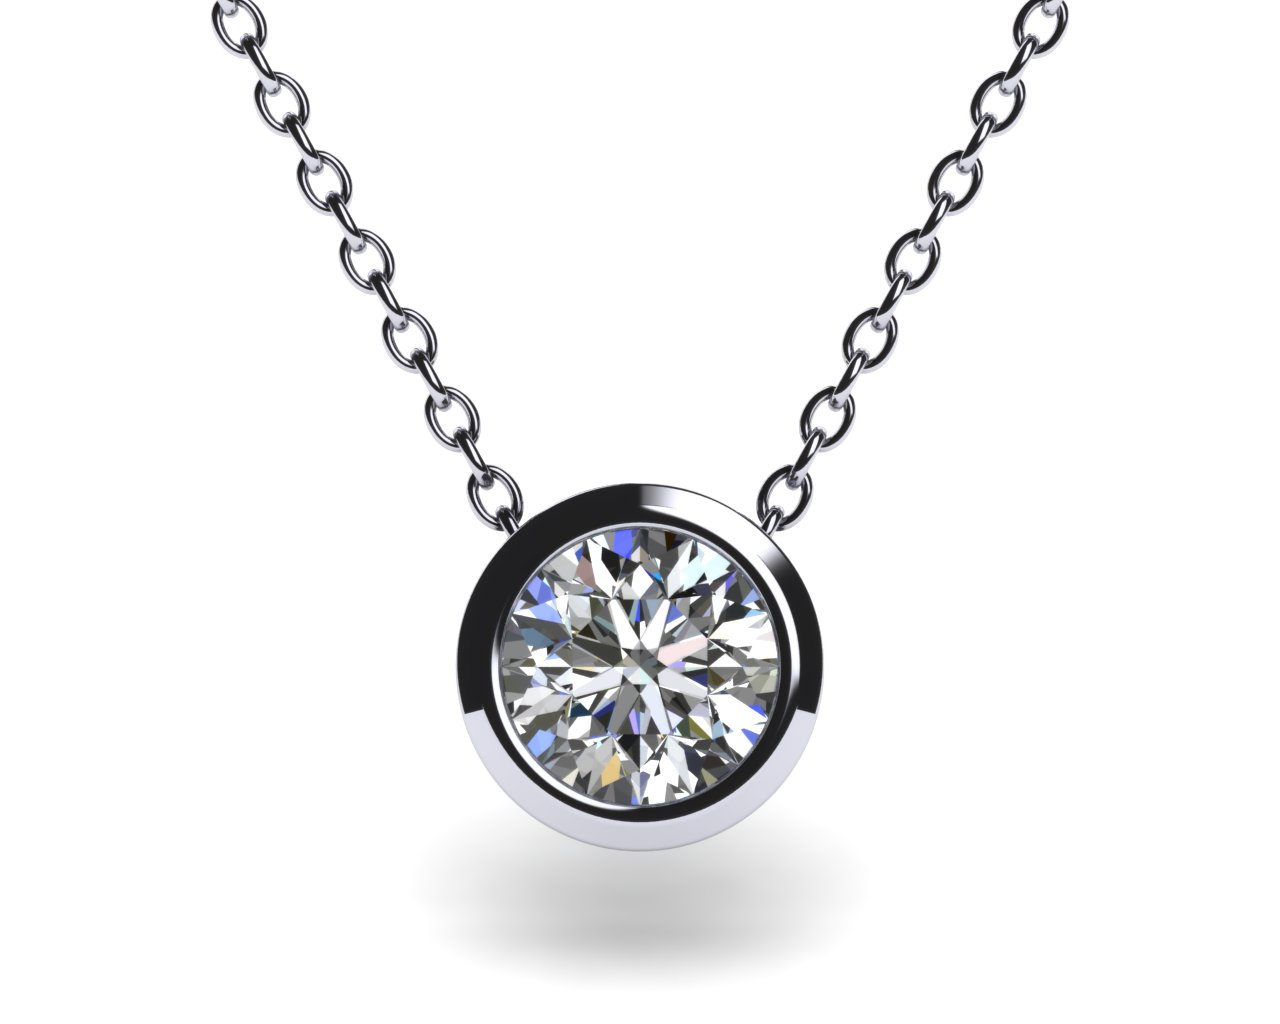 london topaz blue in white gold m necklaces bezel set p necklace